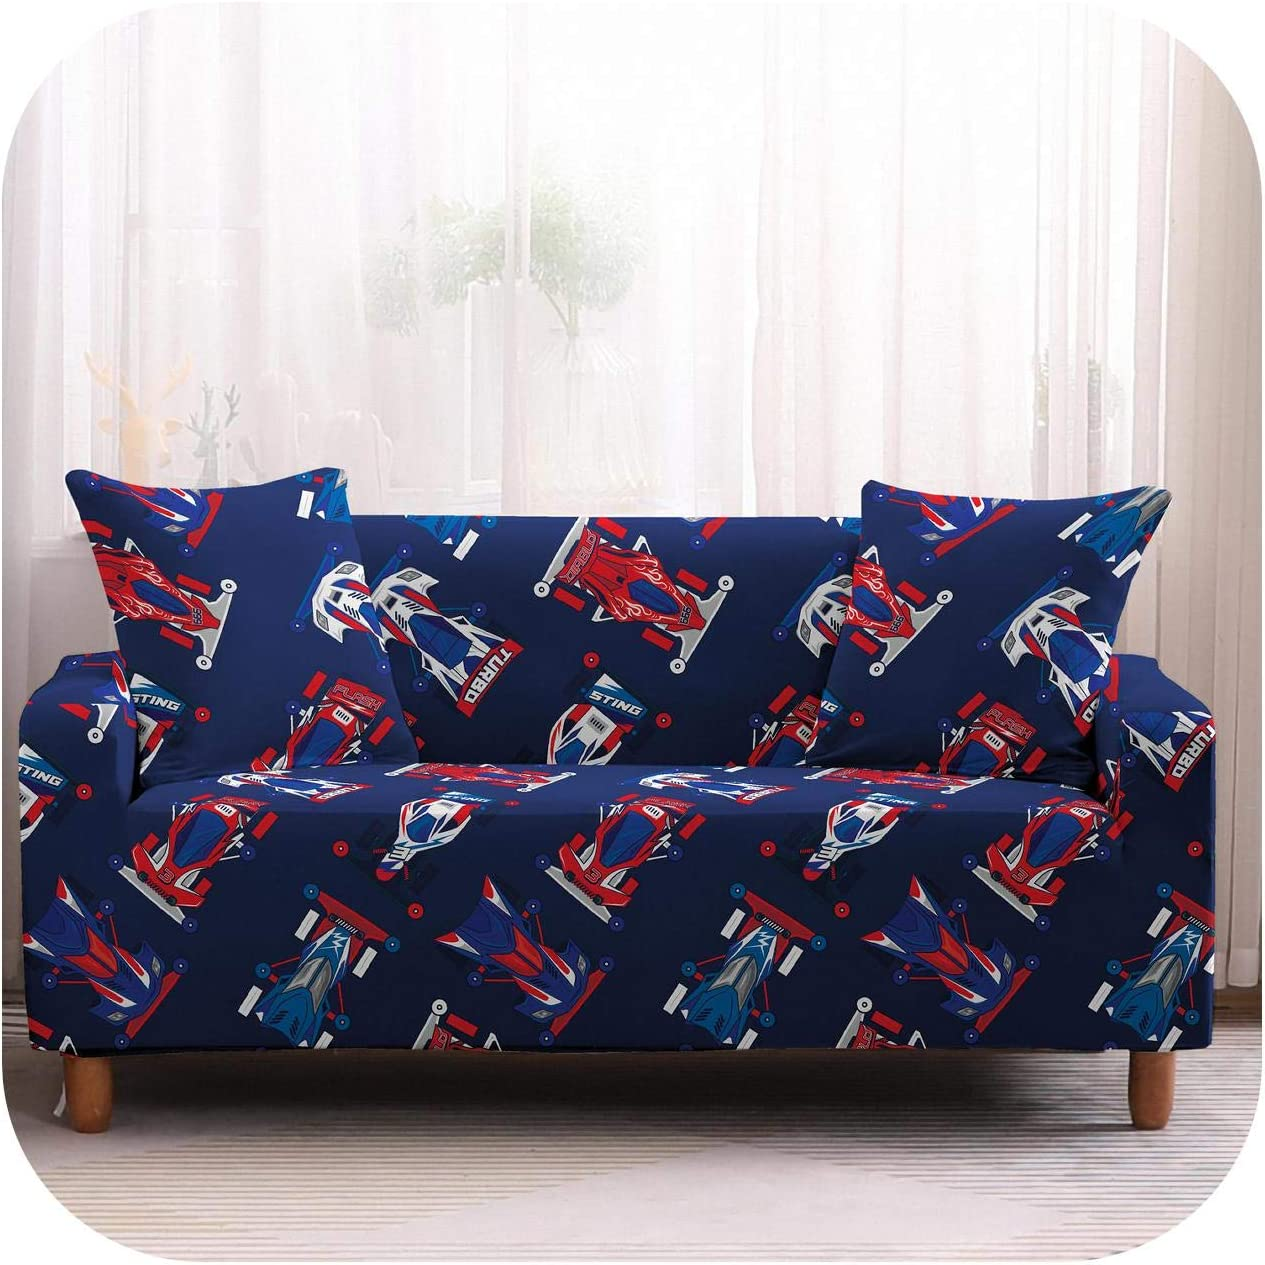 all-equal Car Sofa Cover Elastic Stretch Modern Chair Couch Cover For Living Room Furniture Protector 1/2/3/4 Seater-4-2 Seater